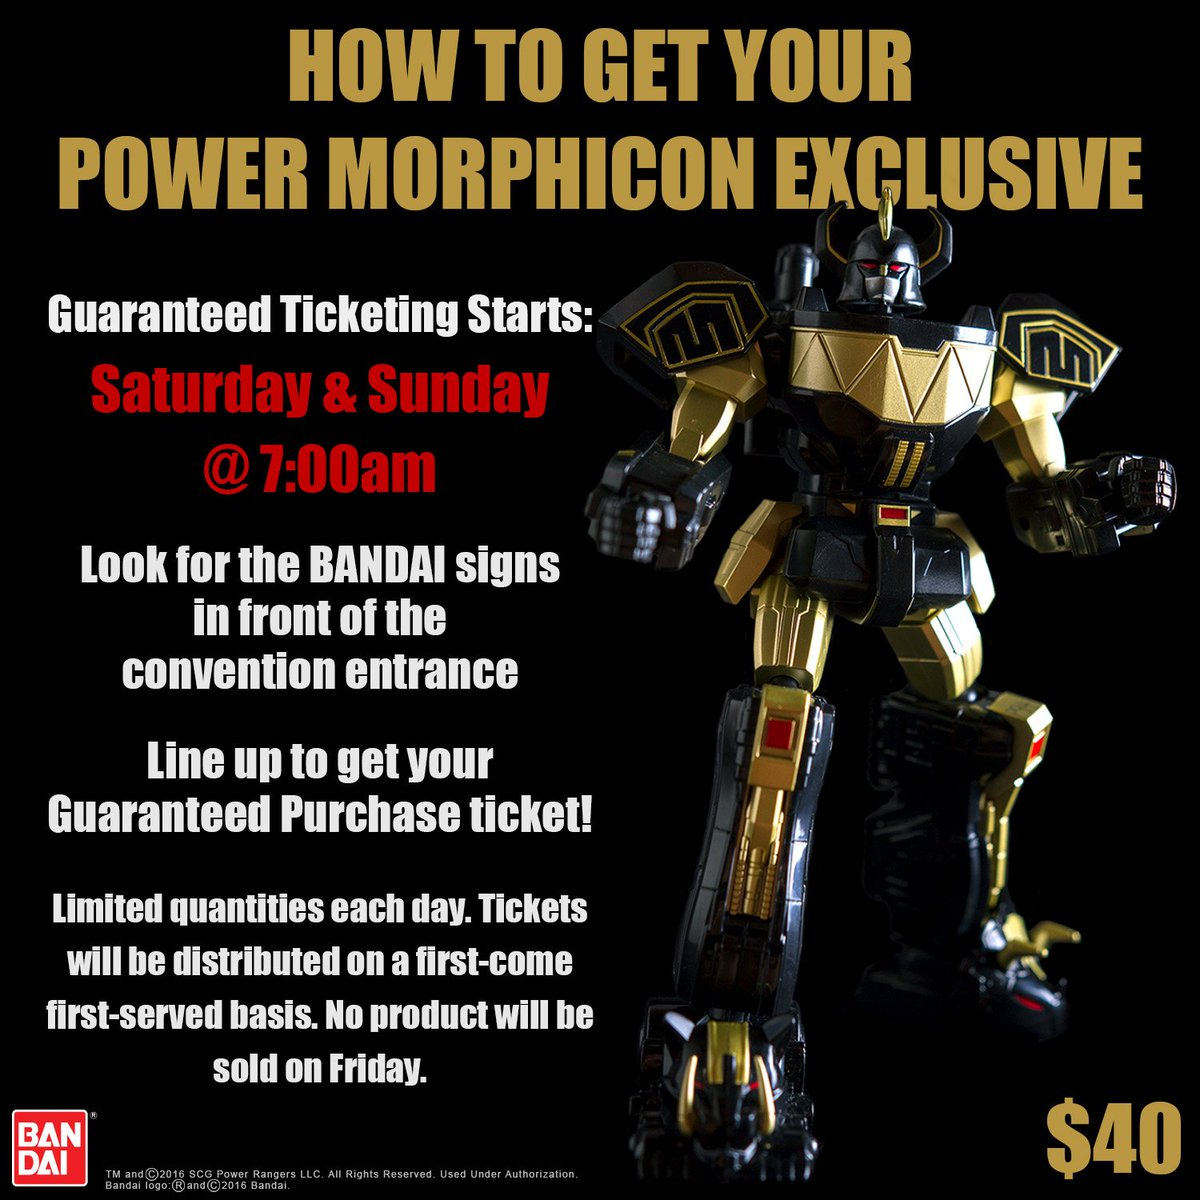 PMC exclusive update! Here is everything you need to know to get YOUR Bandai Power Morphicon exclusive this year https://t.co/SIbURfdBtJ